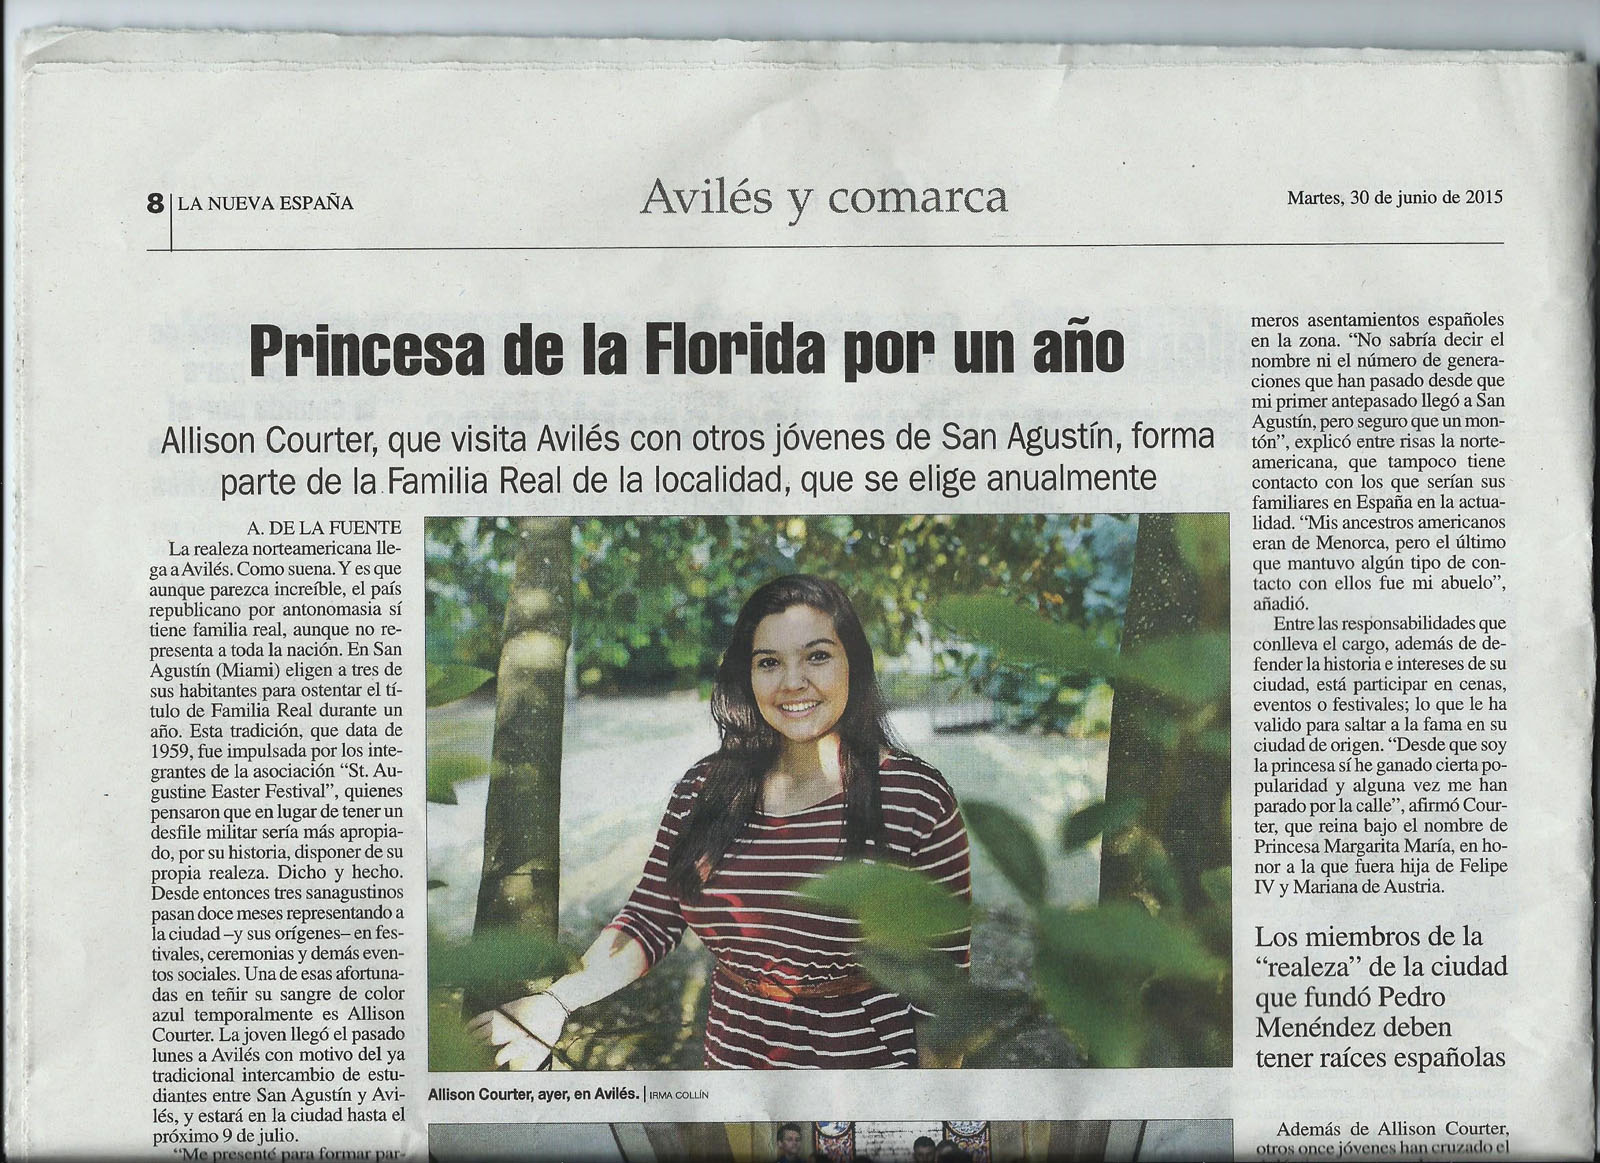 A feature in the Aviles newspaper spotlighted Allison during her visit to that Spanish city as a Sister Cities exchange student.